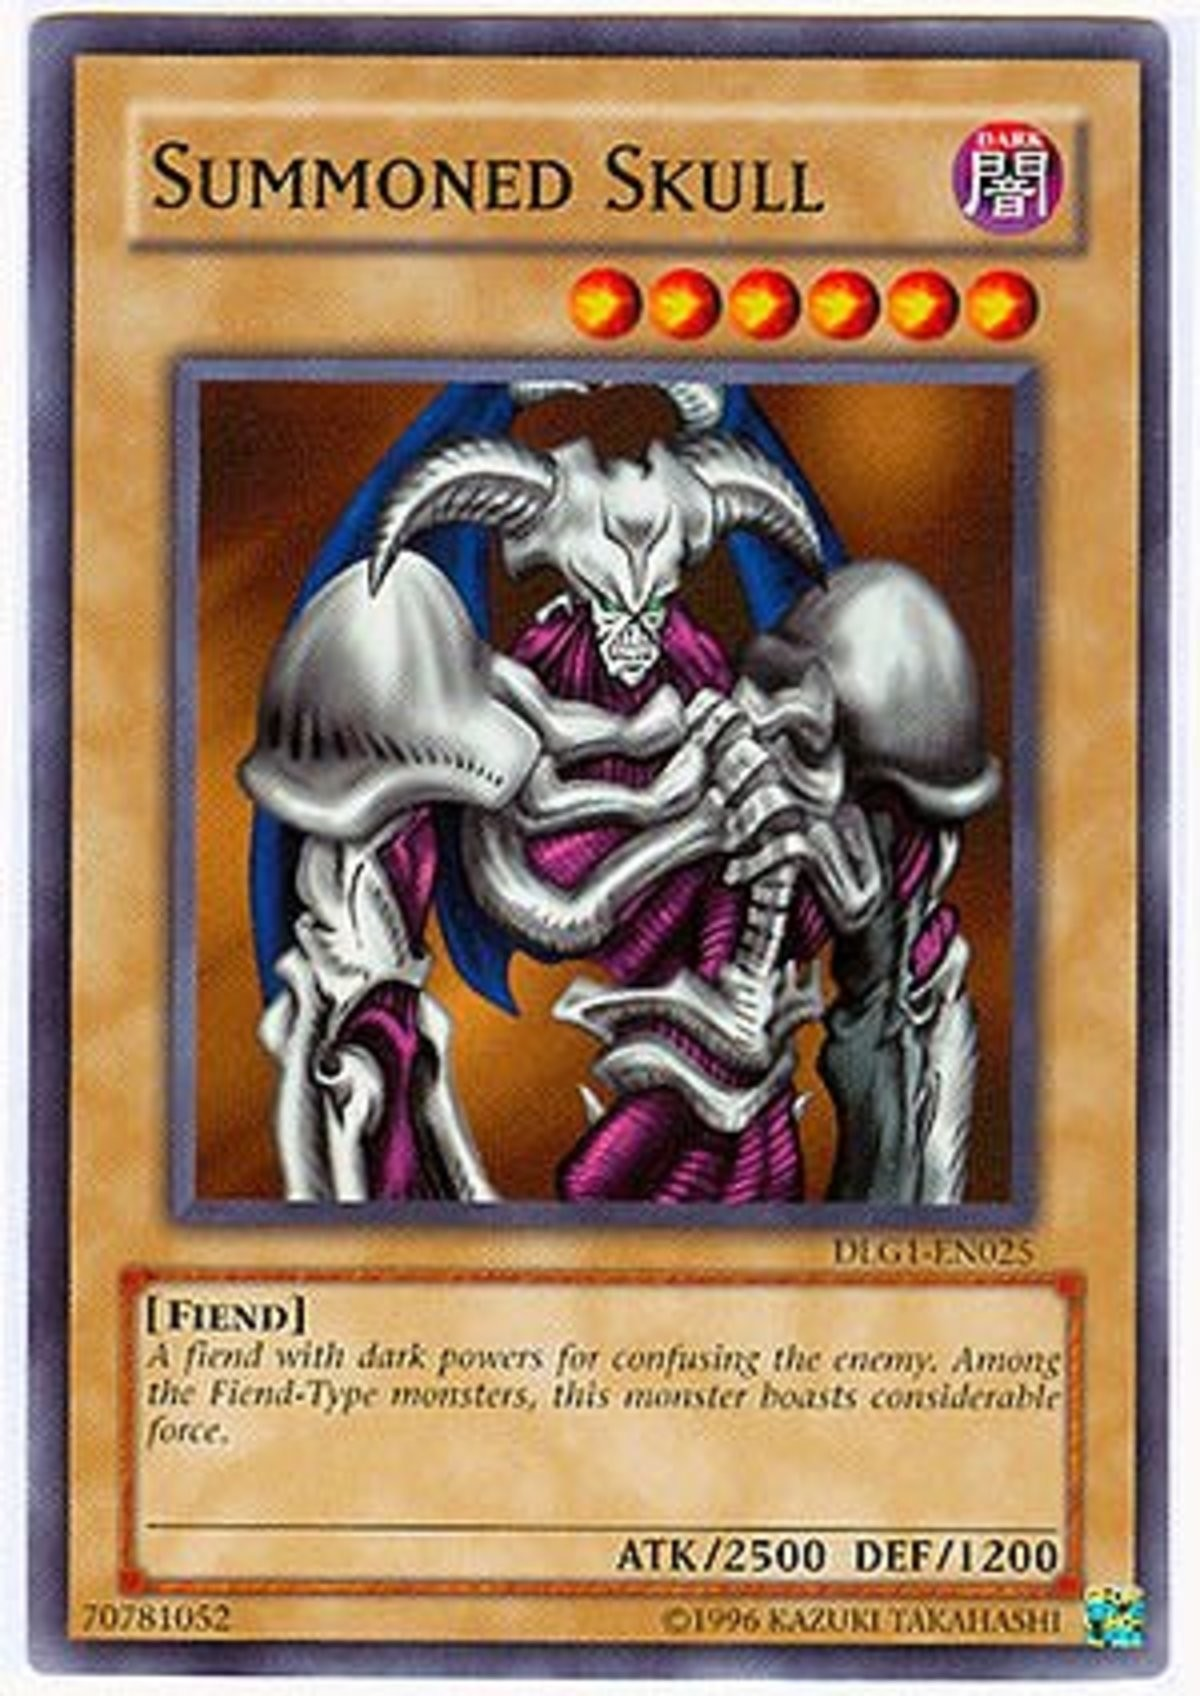 The big boy from 2002. .. Best part is he was objectively better than dark magician since he only needed 1 tribute to summon when dark magician needed 2, feels good man.